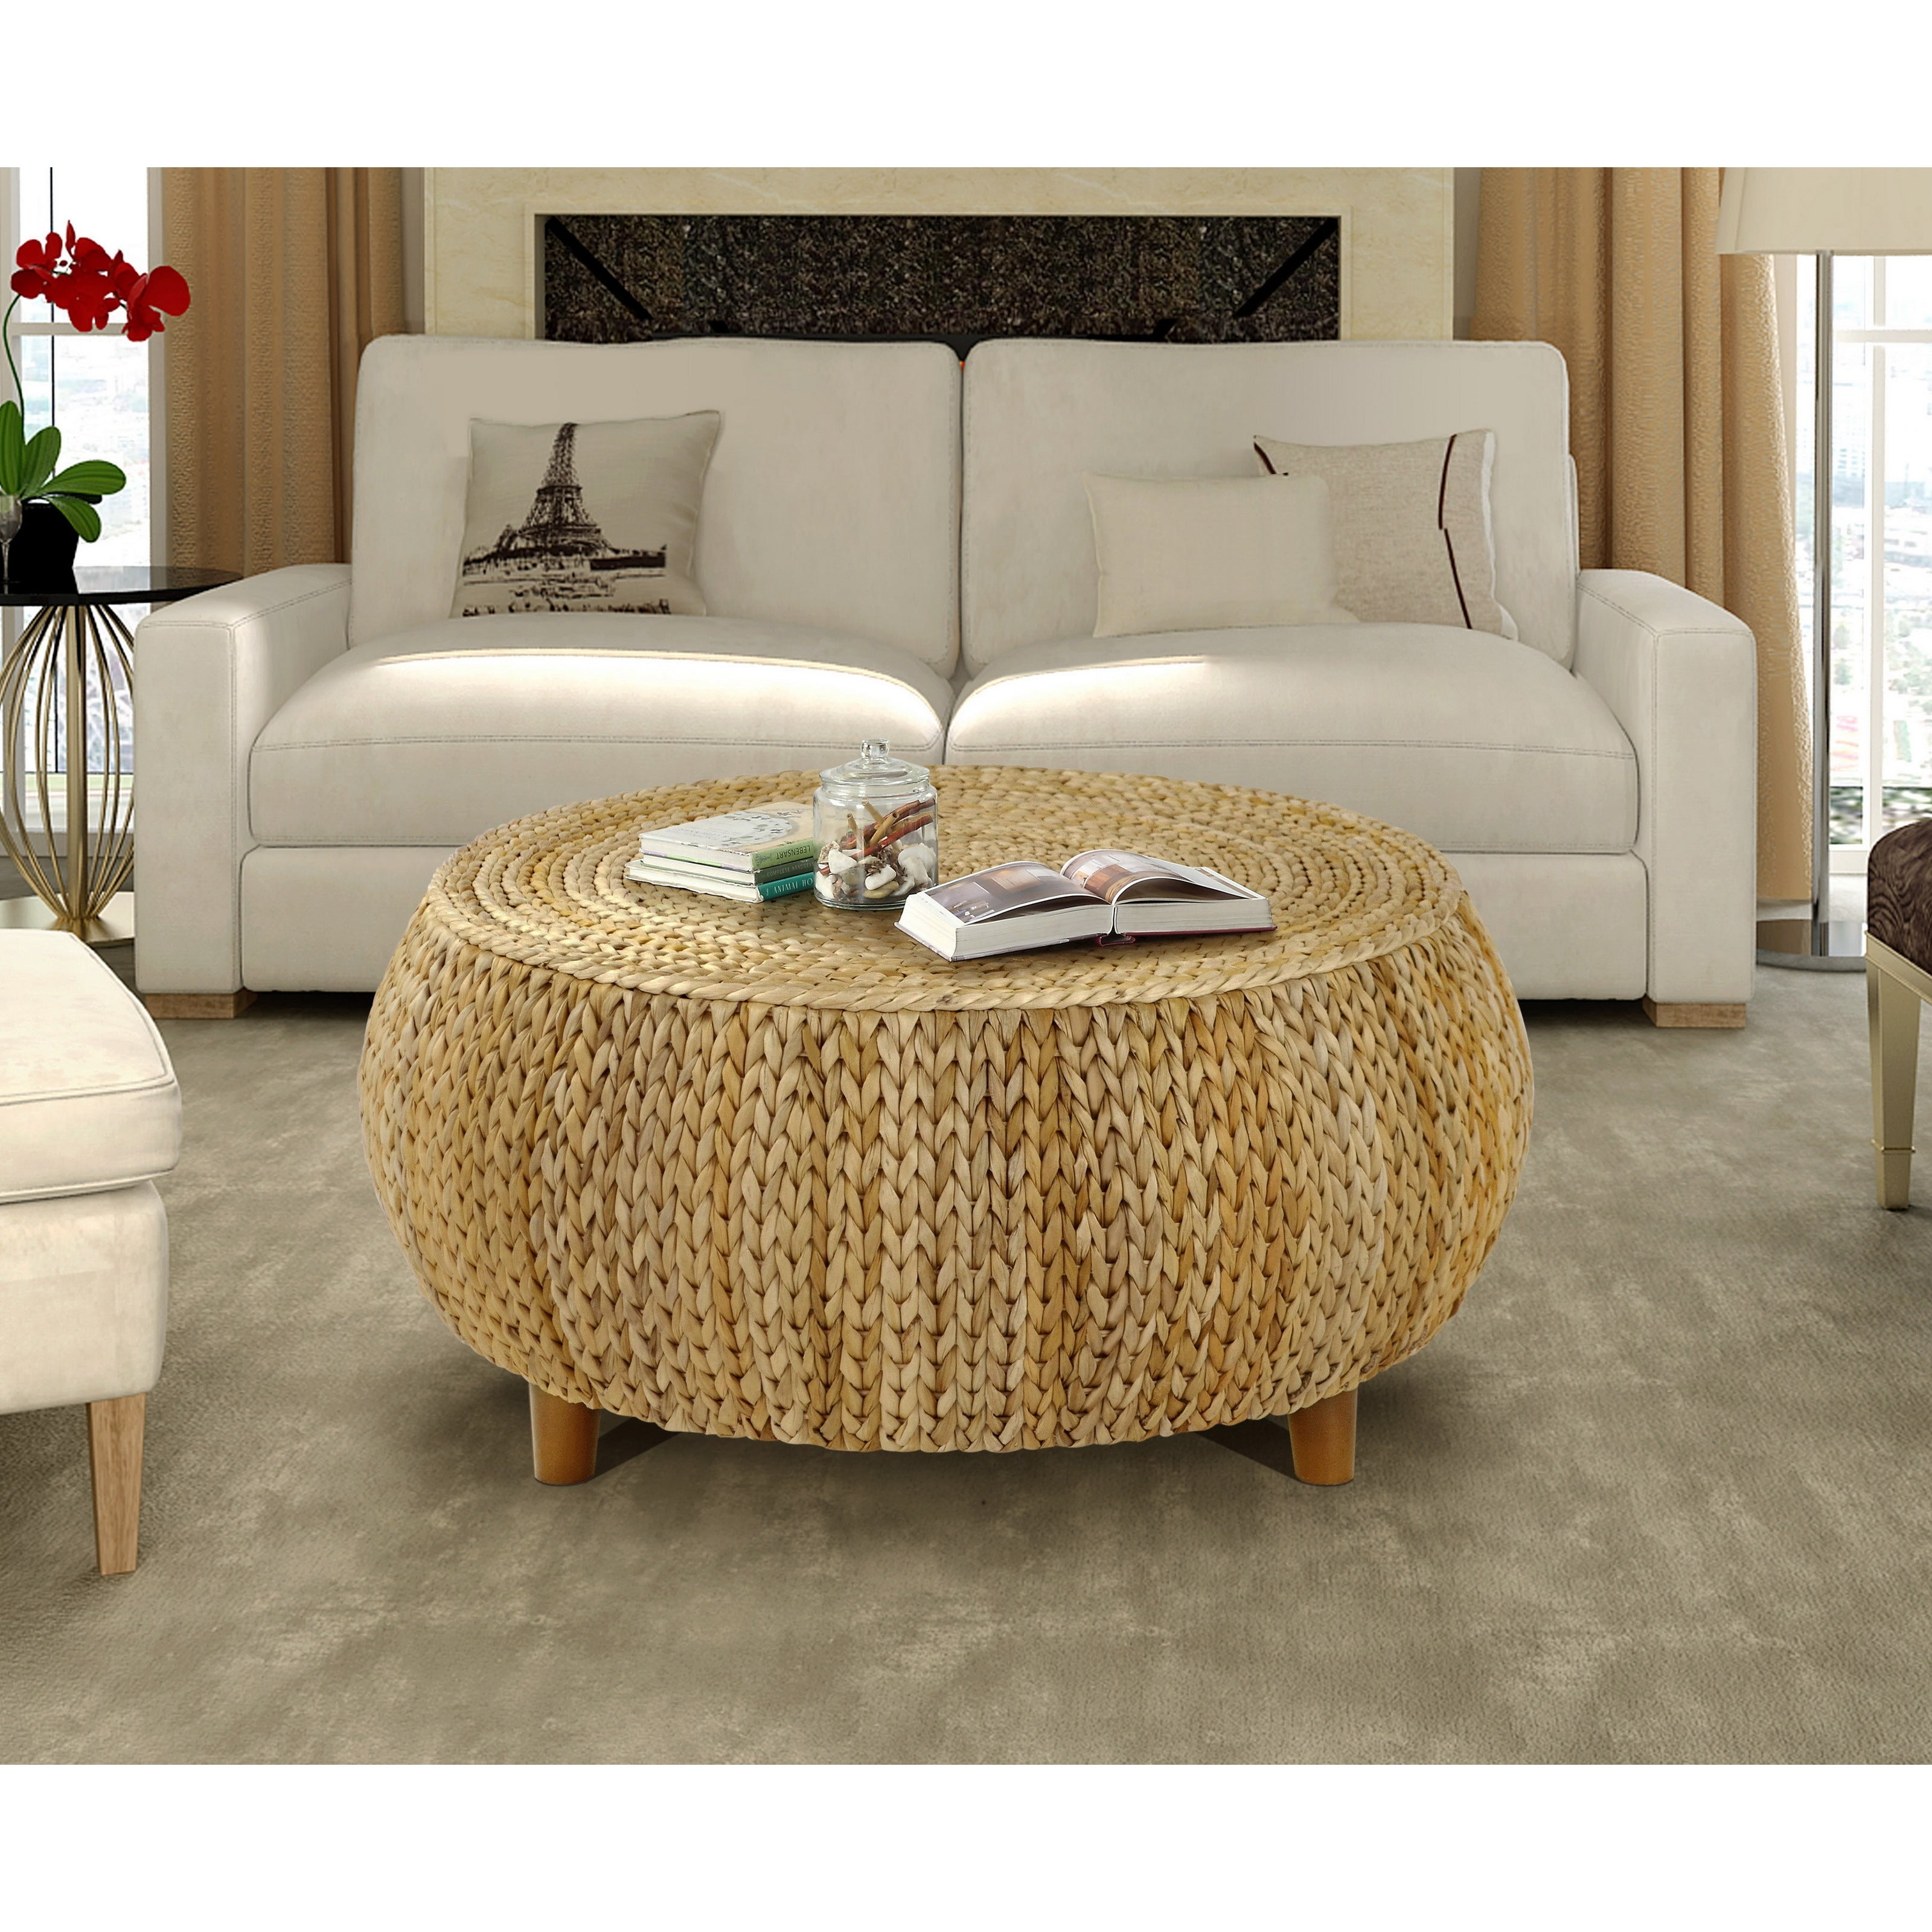 shop gallerie decor bali breeze low round coffee table